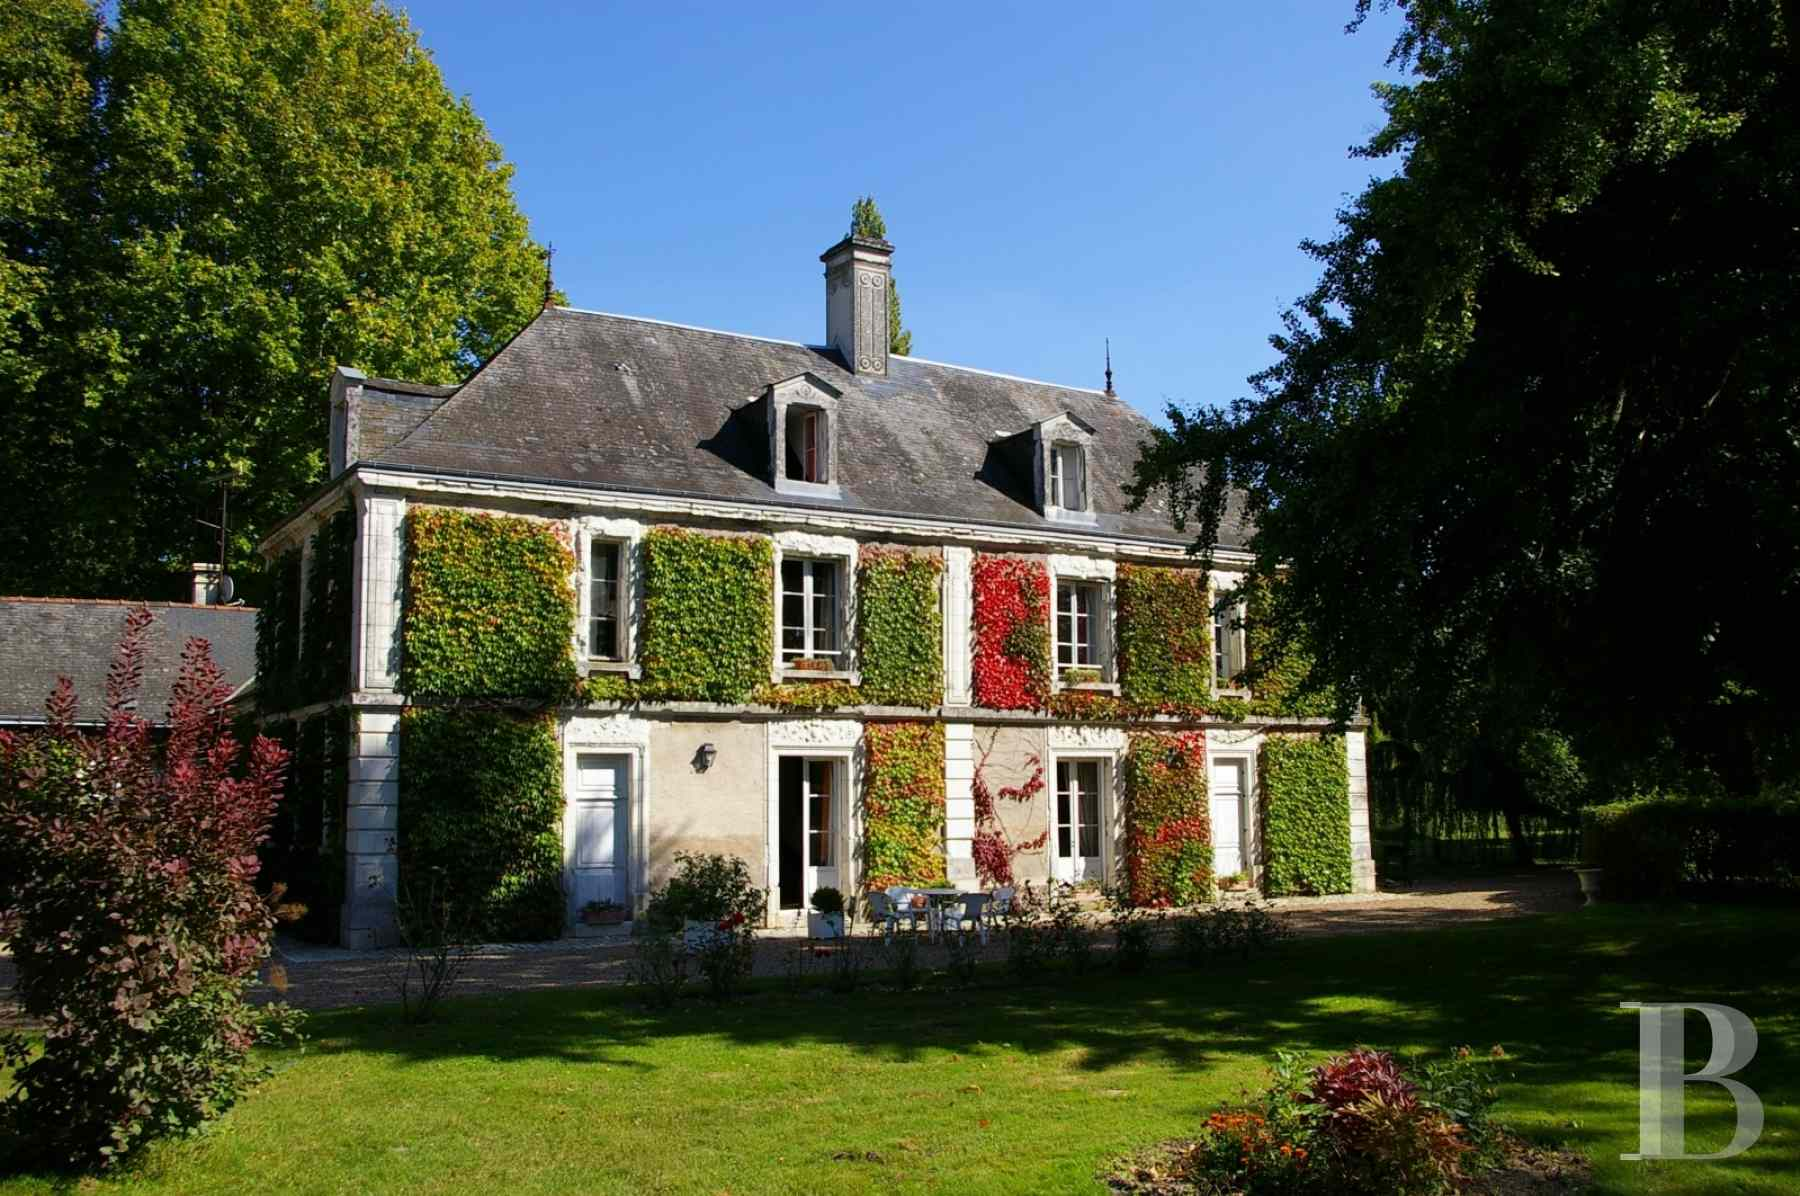 property for sale France center val de loire chenonceau guesthouse - 1 zoom